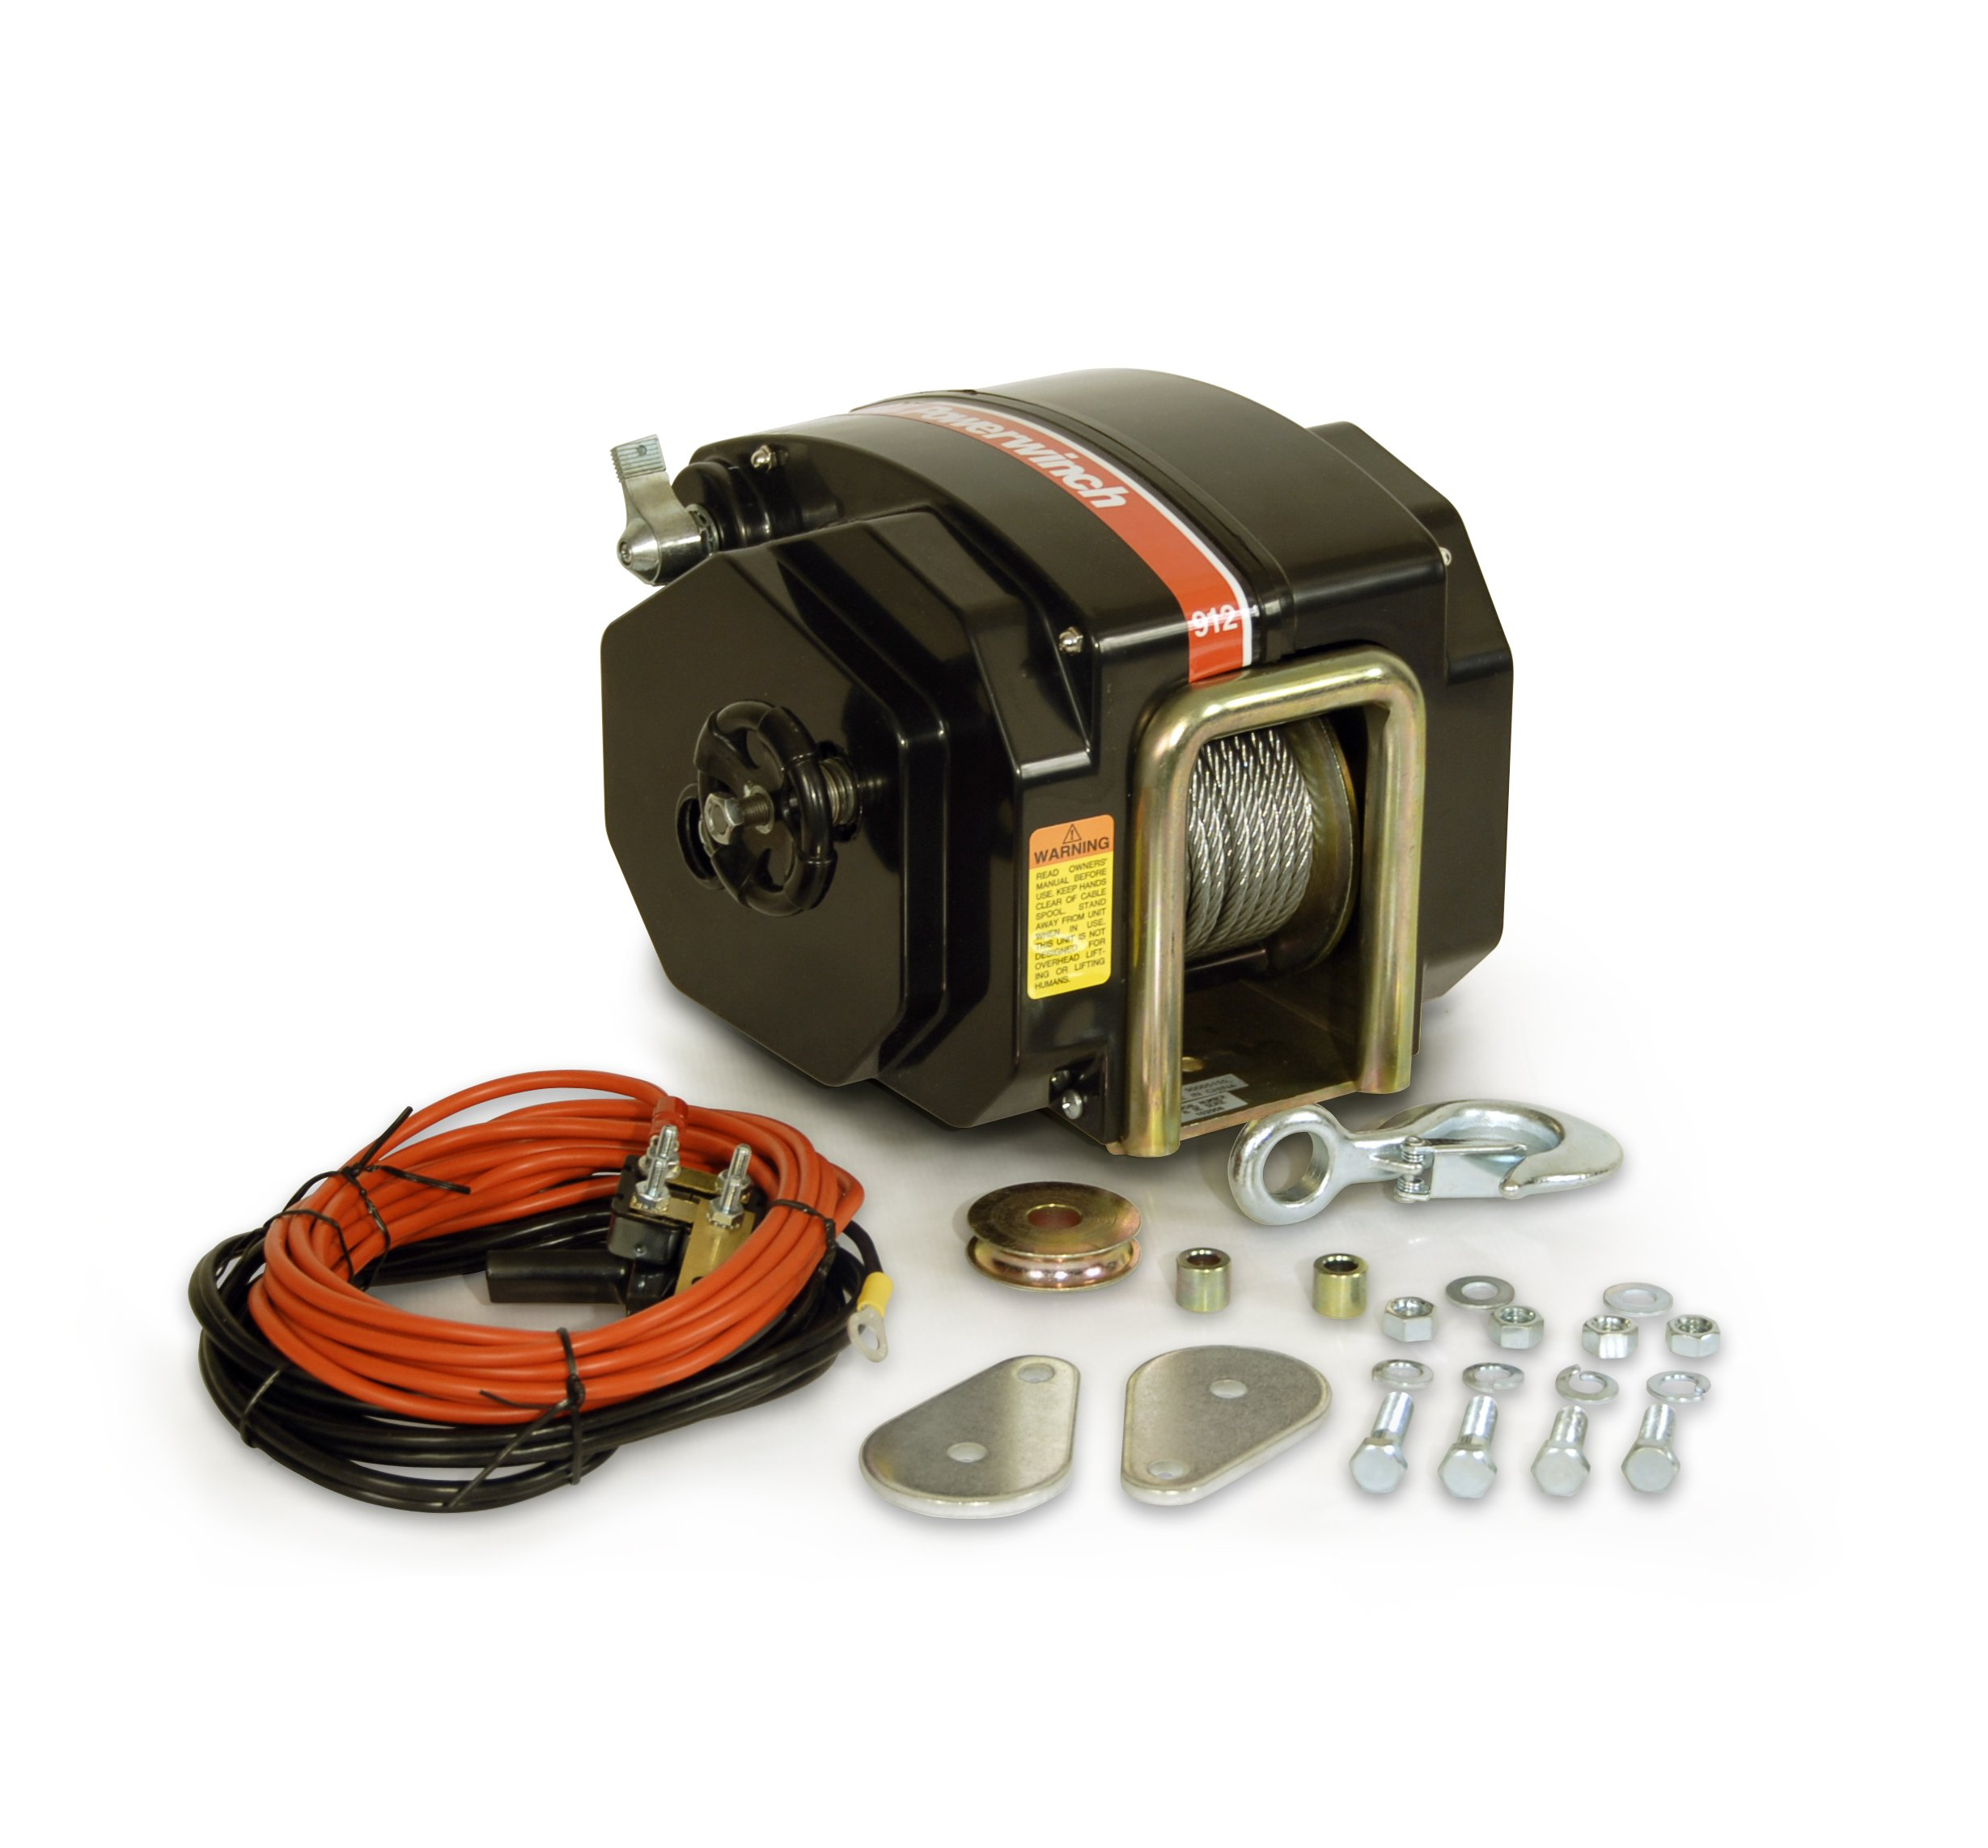 Powerwinch 912 Trailer Winch (40' x 7/32'' cable) by Powerwinch